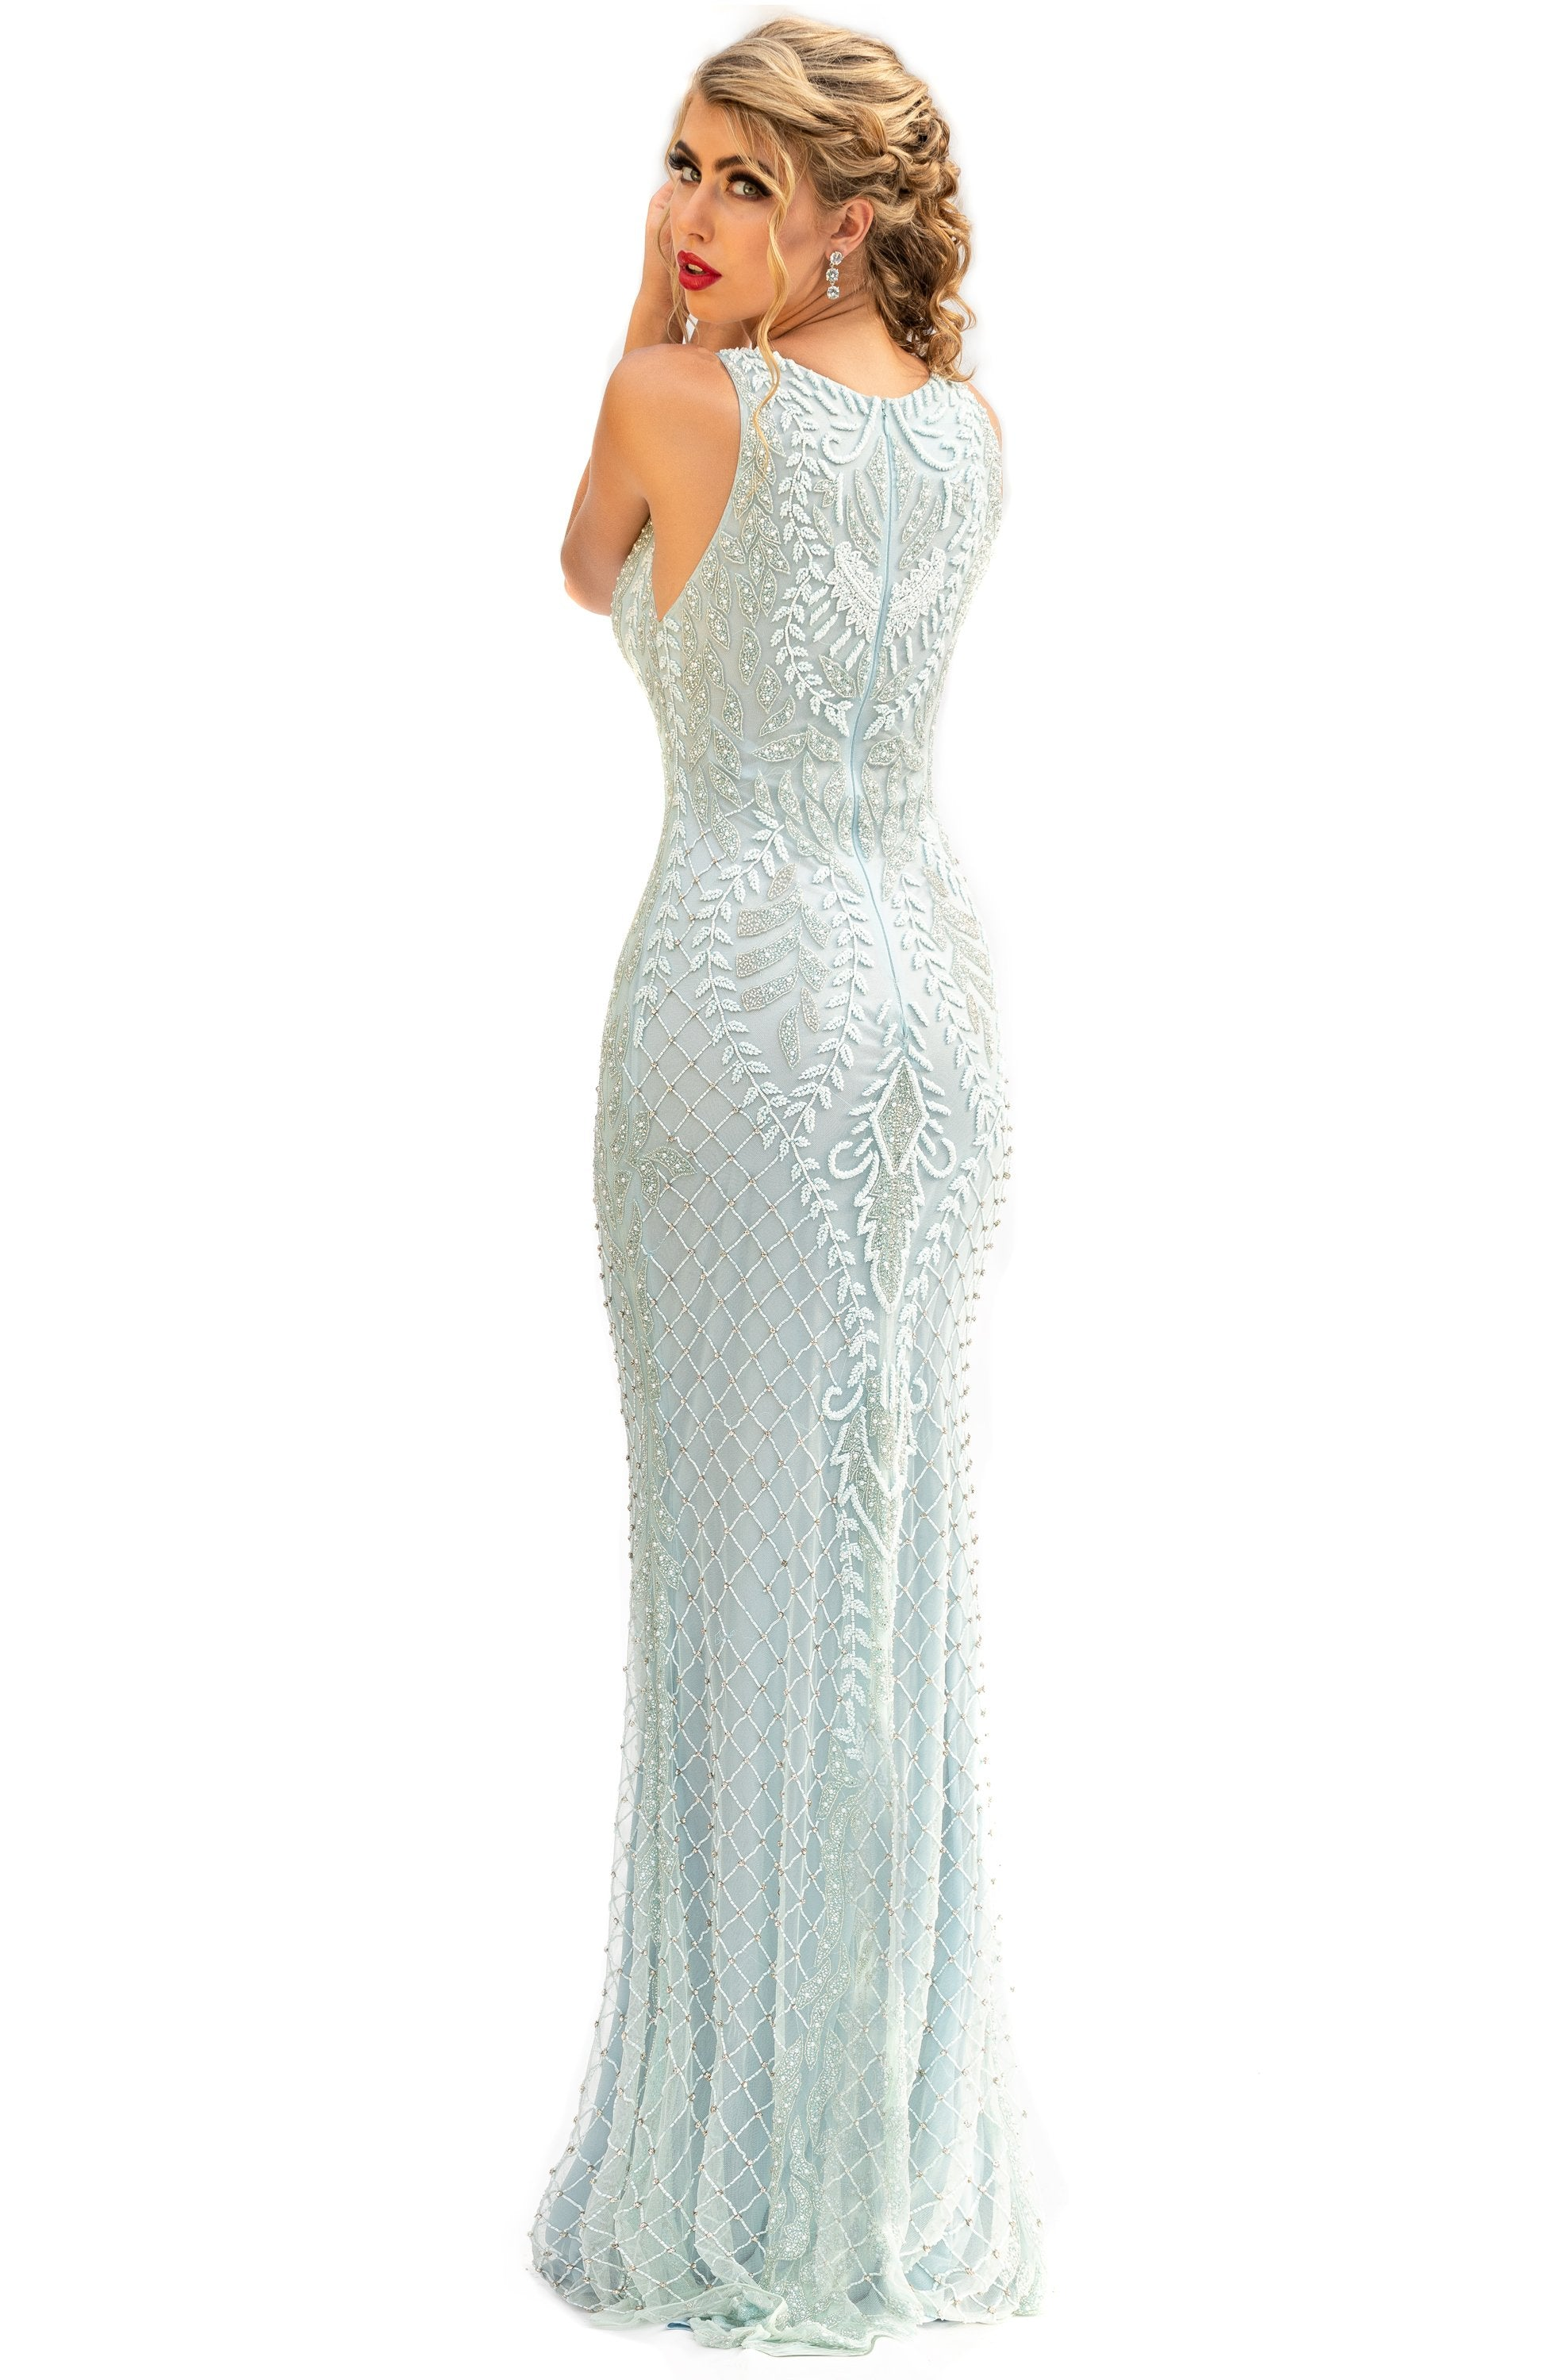 Primavera Couture - 3227 Jewel Neck Intricate Beaded Sheath Gown In Blue